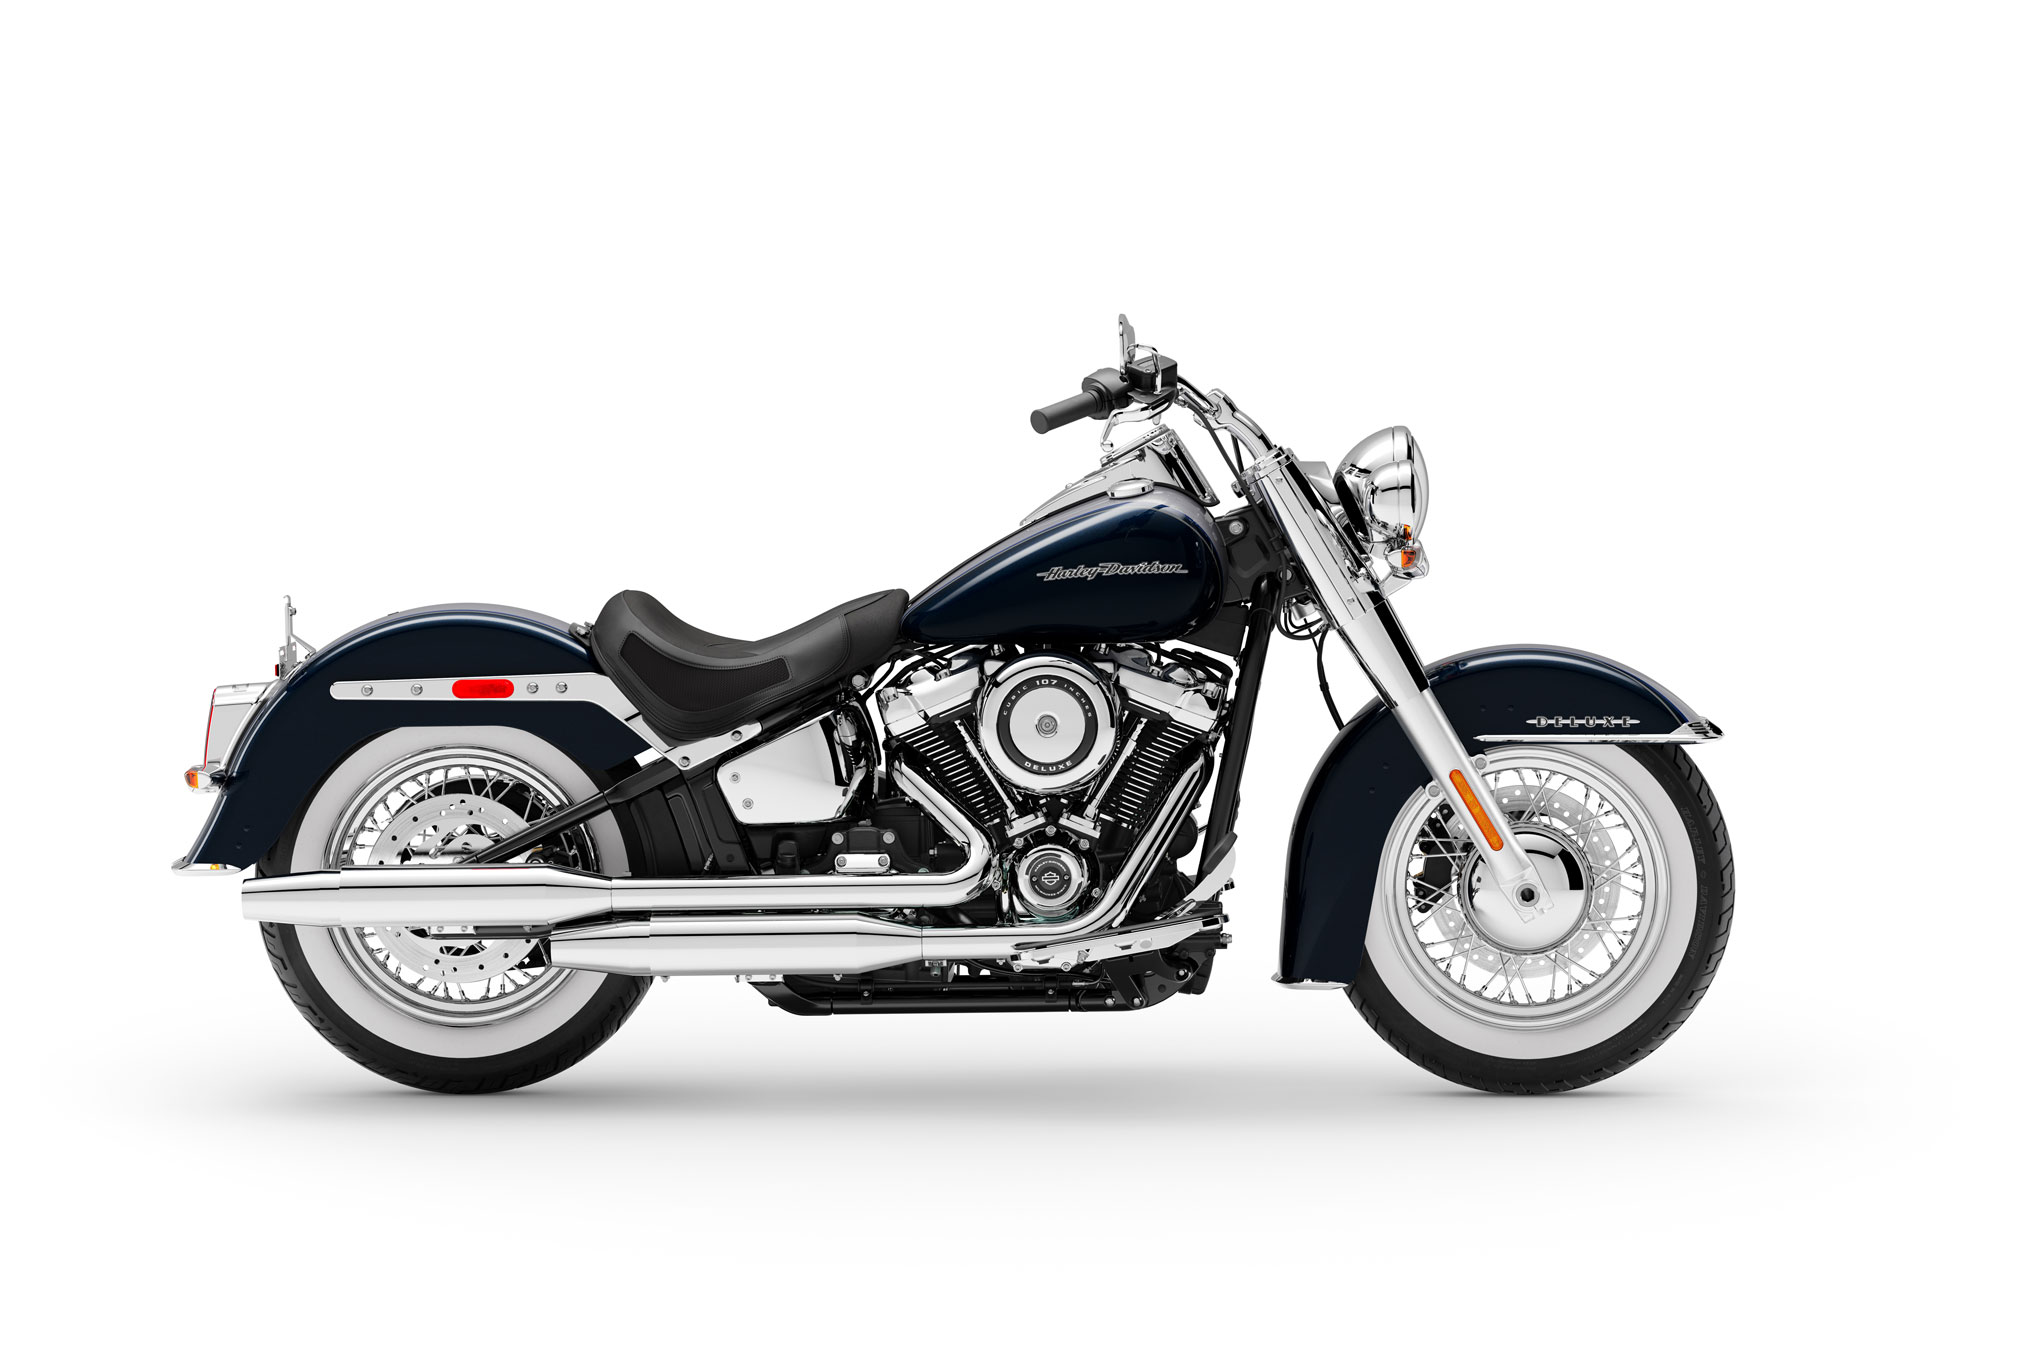 2019 Harley Davidson Fxdr 114 Guide � Total Motorcycle: 2019 Harley-Davidson Deluxe Guide • Total Motorcycle